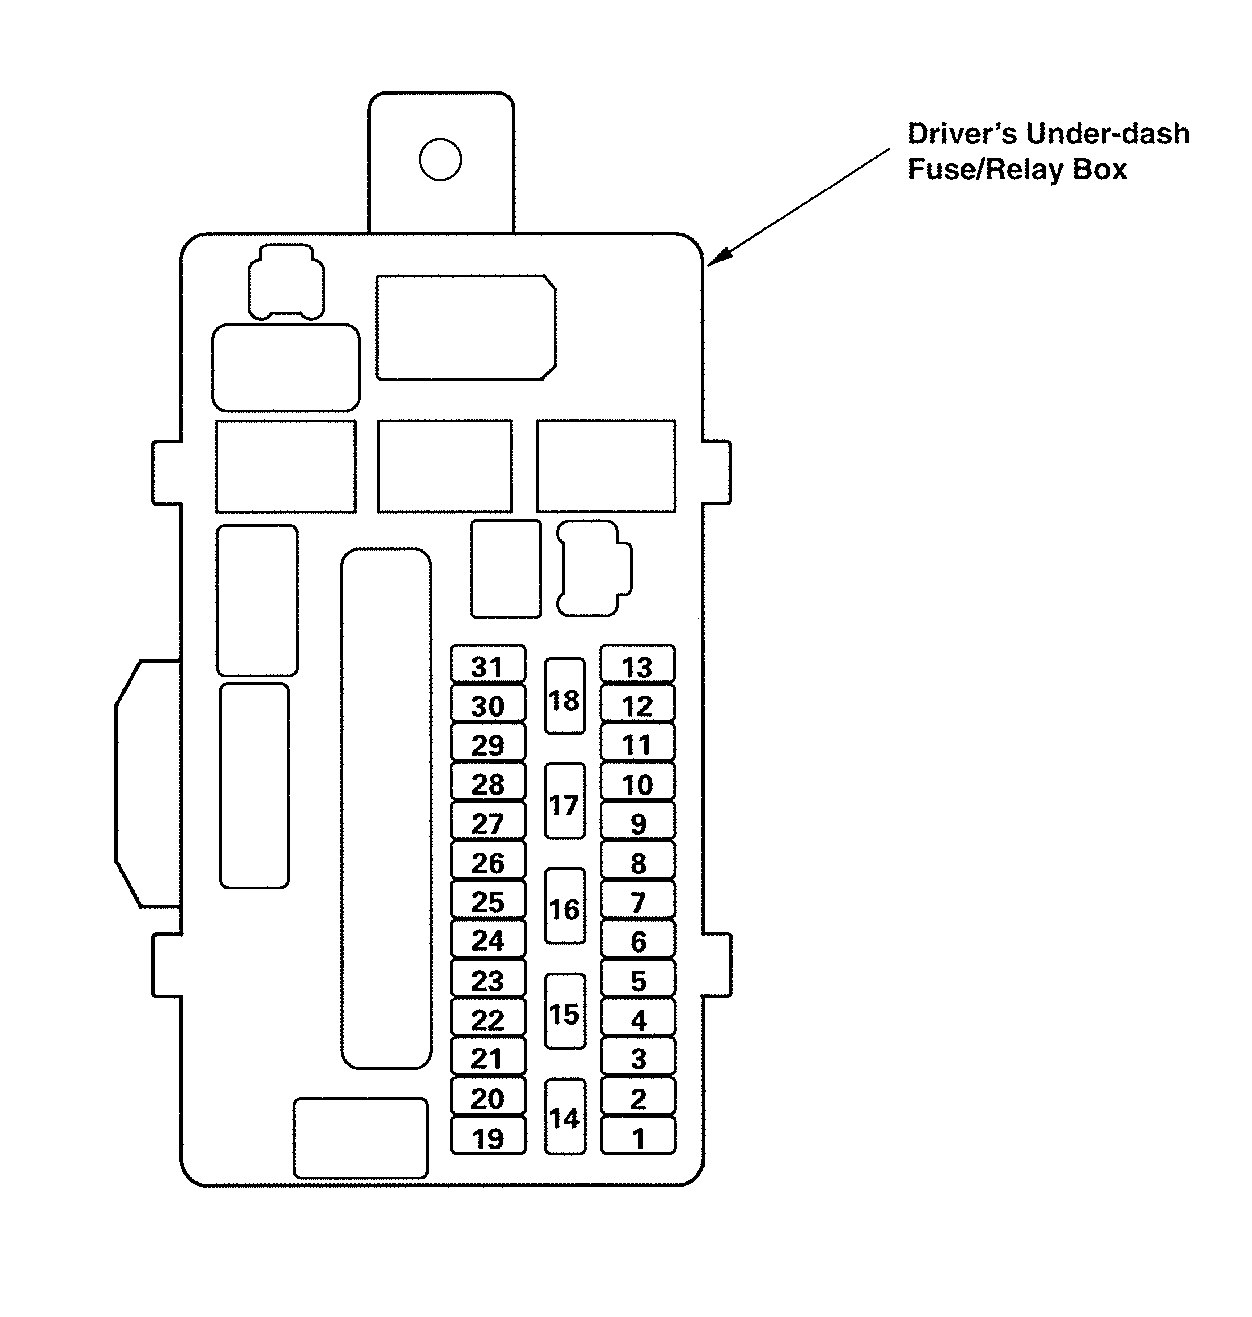 Acura Tl 2009 Fuse Box Explained Wiring Diagrams 1999 Panel Carknowledge On